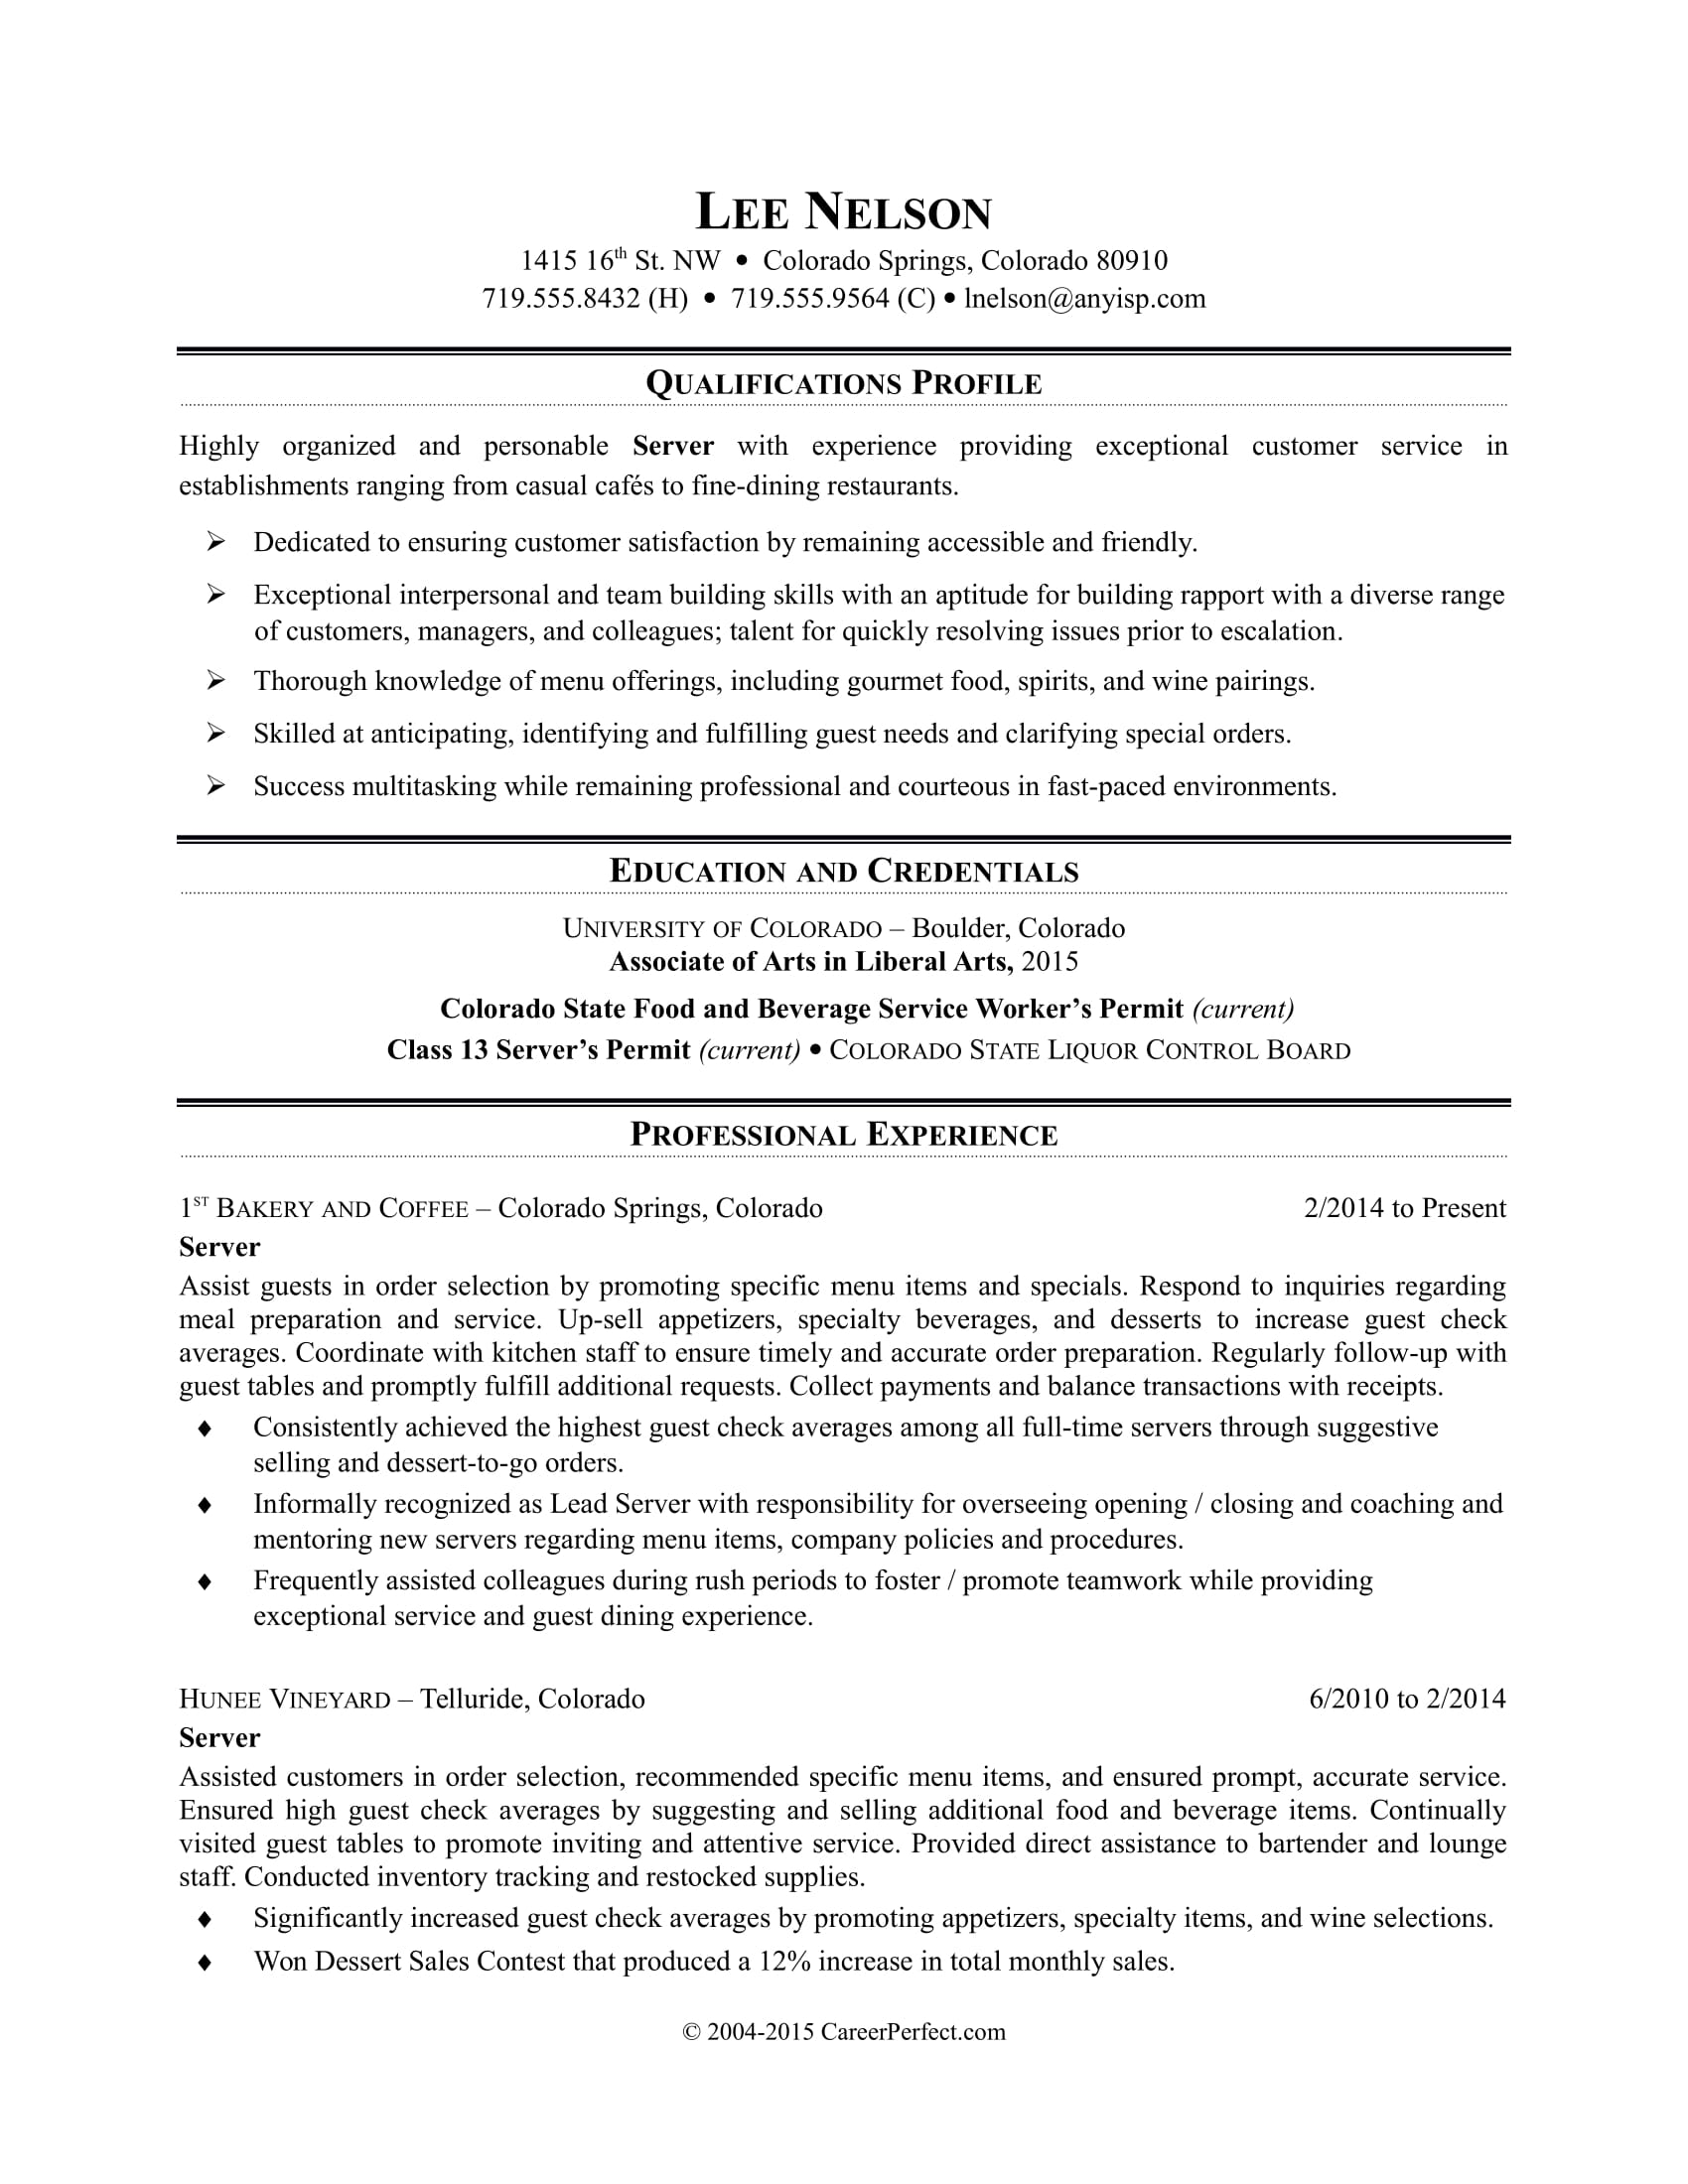 Resume Template Restaurant | Restaurant Server Resume Sample Monster Com